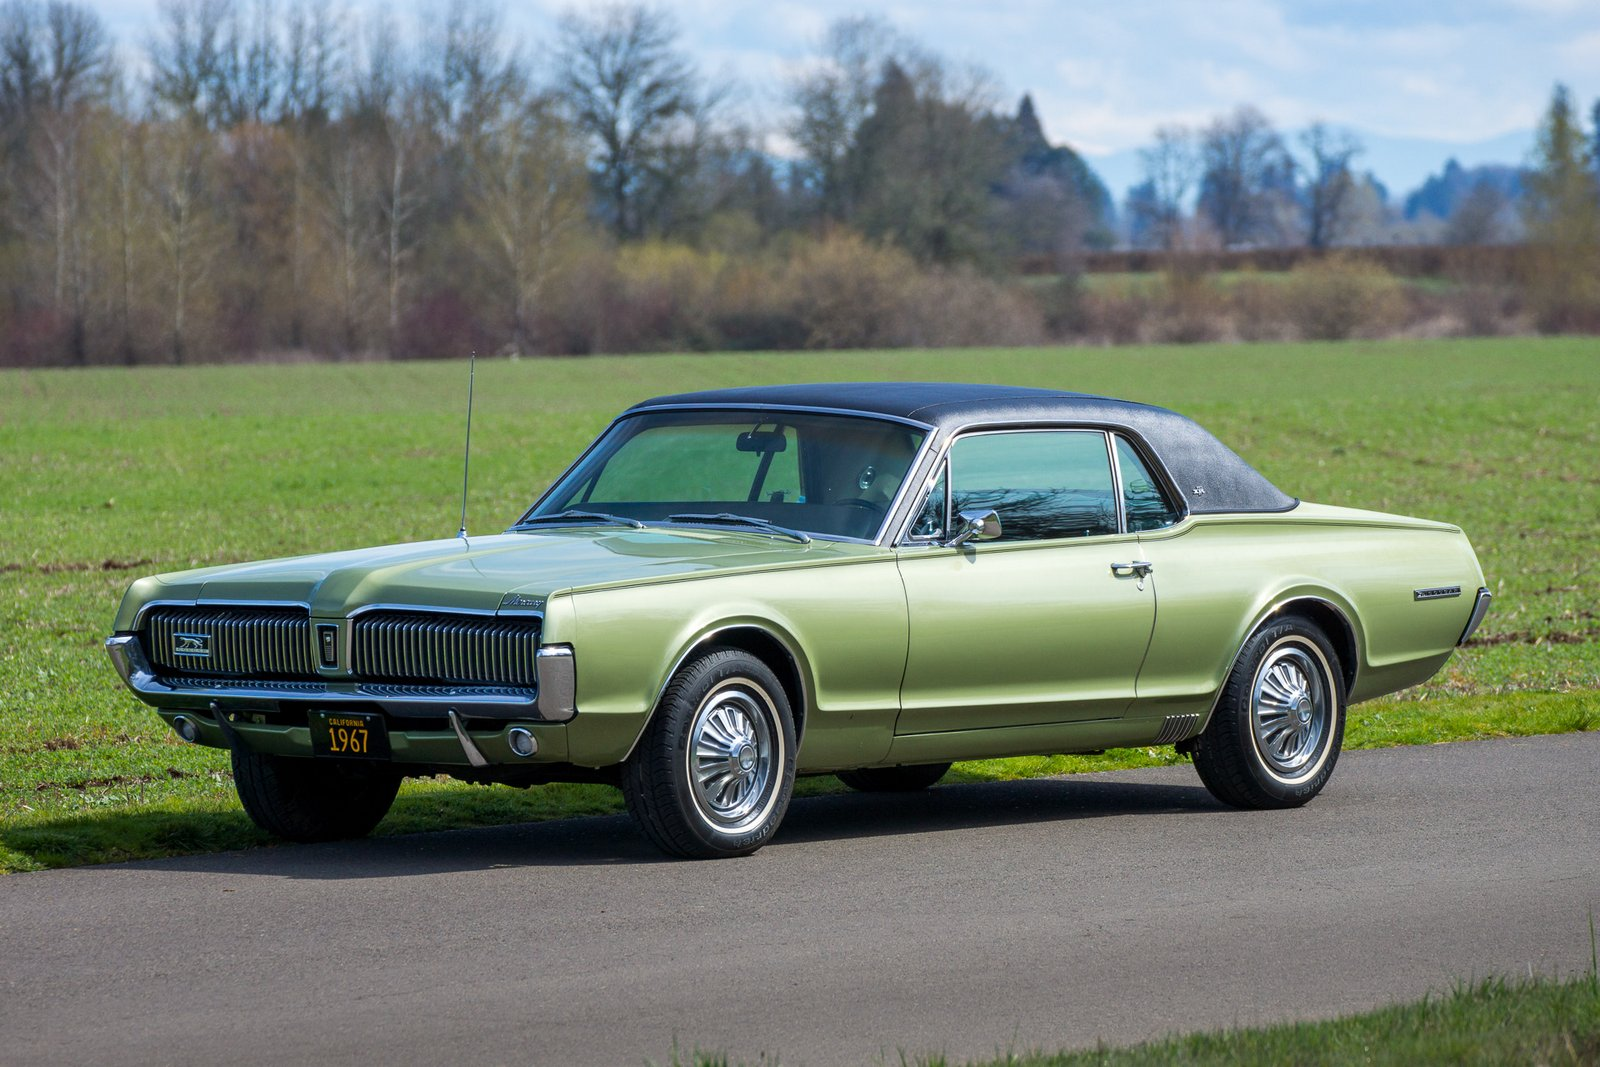 hight resolution of no reserve 1967 mercury cougar xr 7 dan gurney special for sale on bat auctions sold for 22 000 on may 20 2019 lot 19 006 bring a trailer